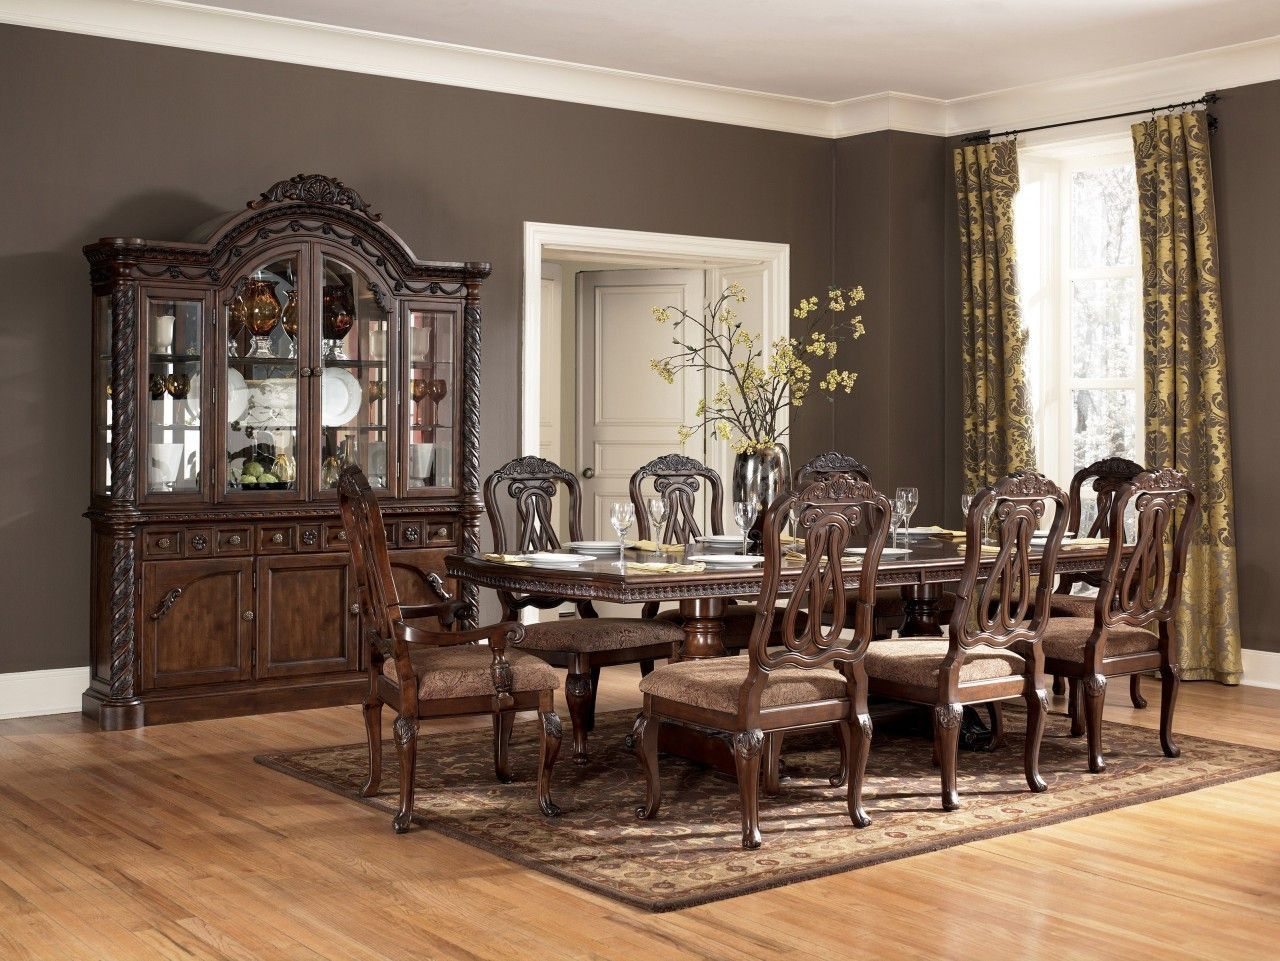 Ashley North Shore Dining Room   ASHLEY FURNITURE STORE:HOME ...